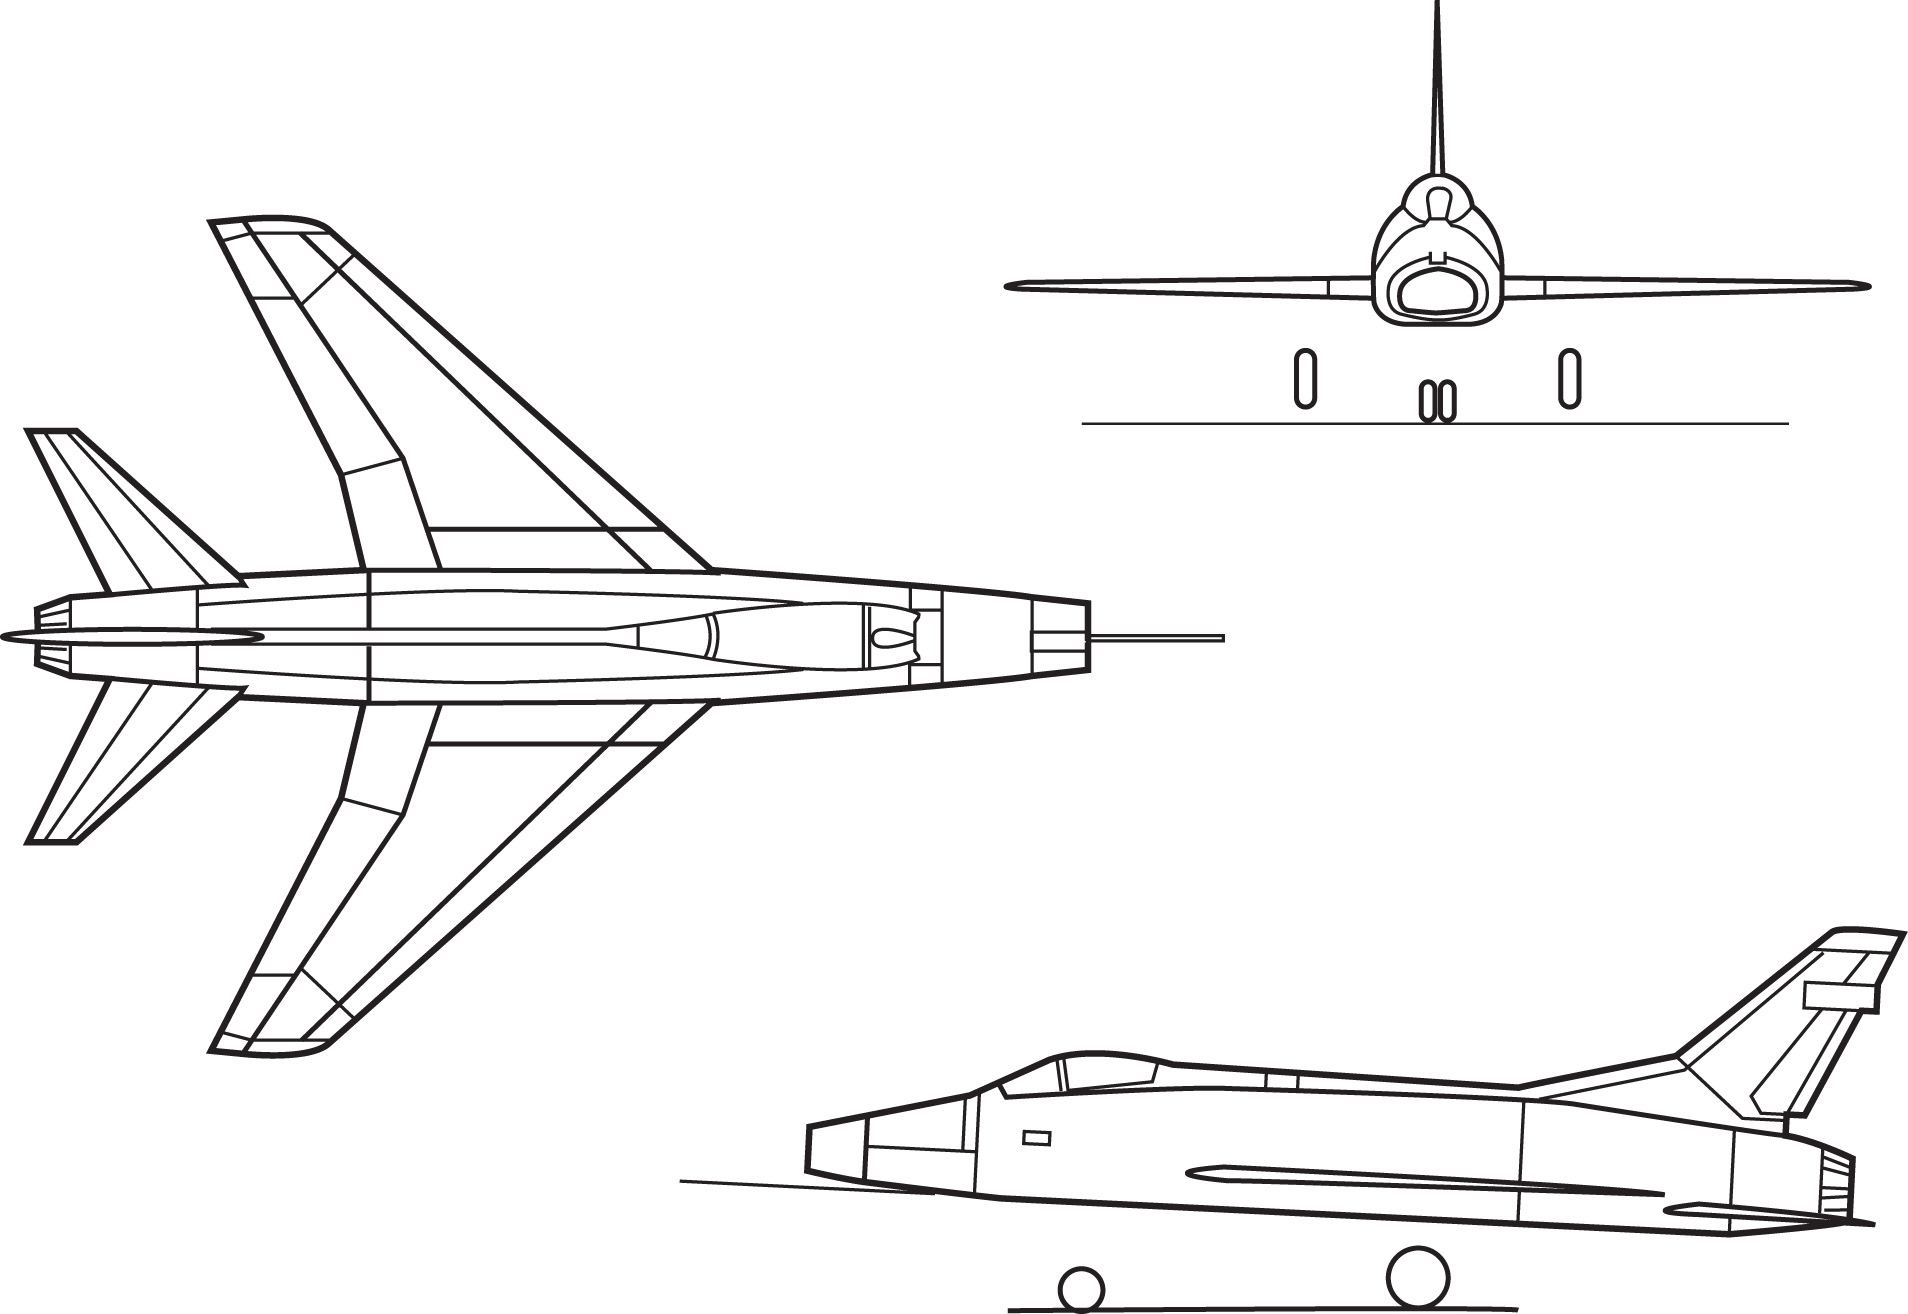 North American F 100 Super Sabre